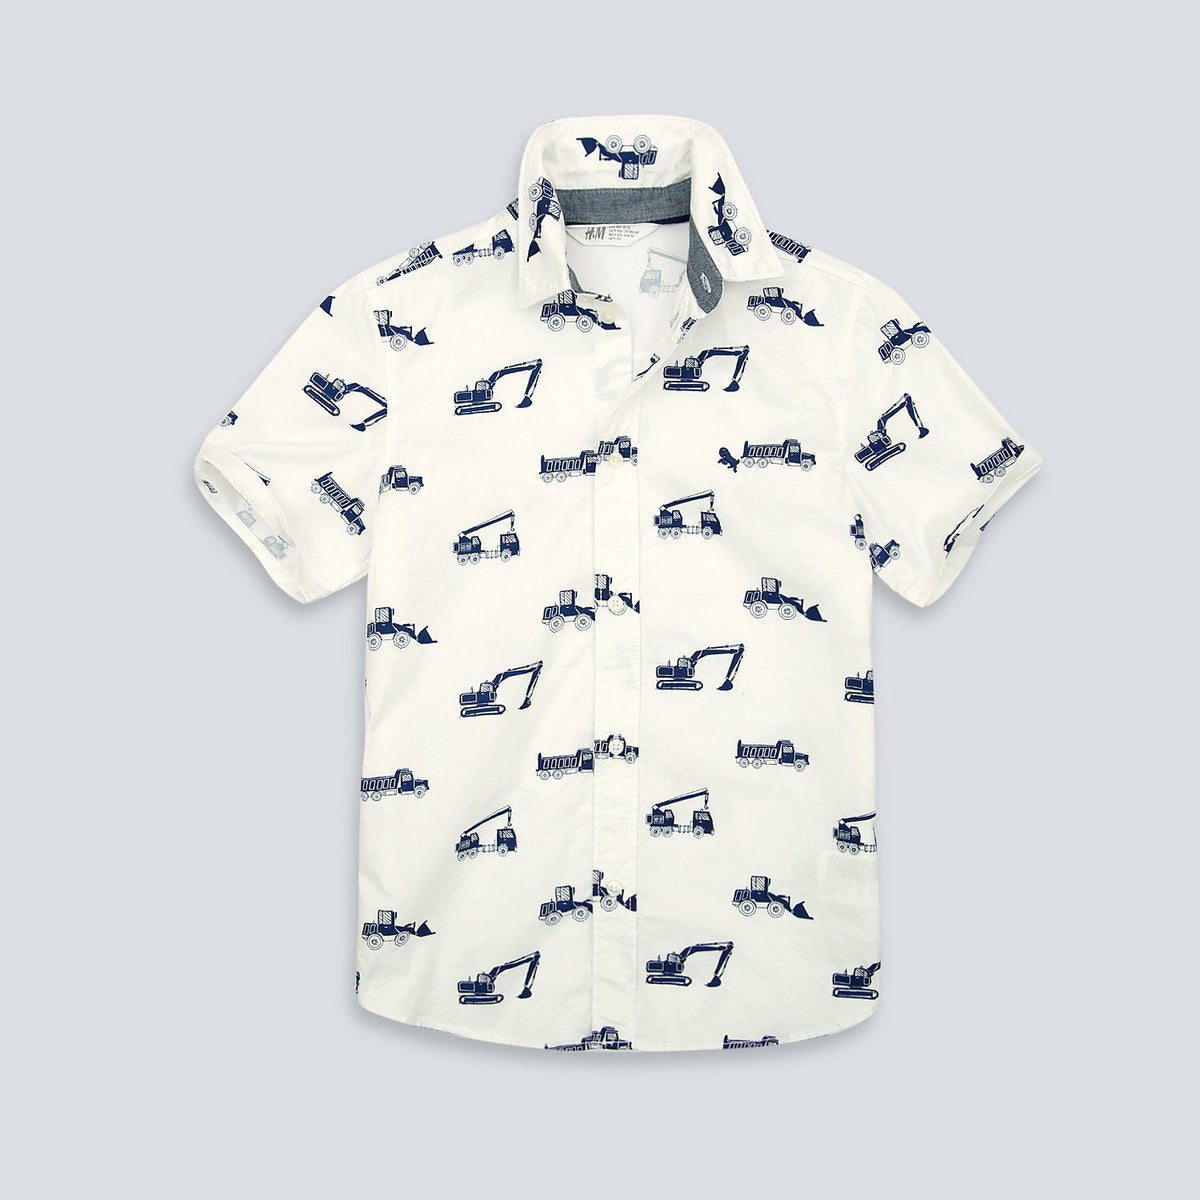 Imported Boys All-Over Printed Cotton Shirt (21234)